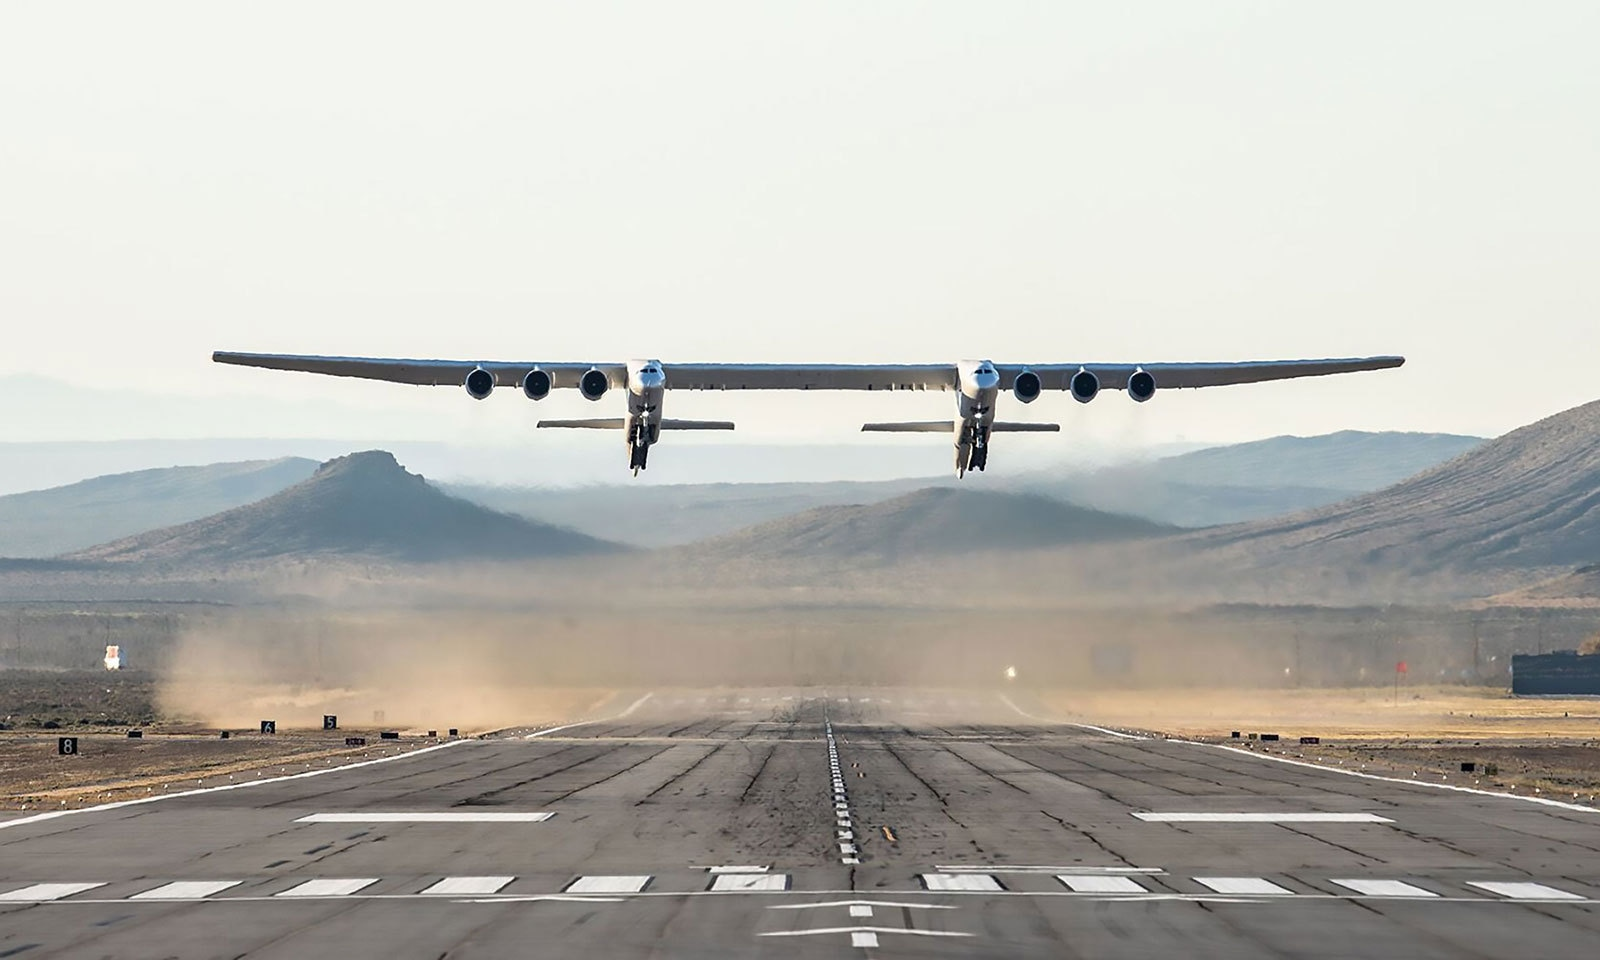 اے ایف پی/Stratolaunch Systems Corp فوٹو